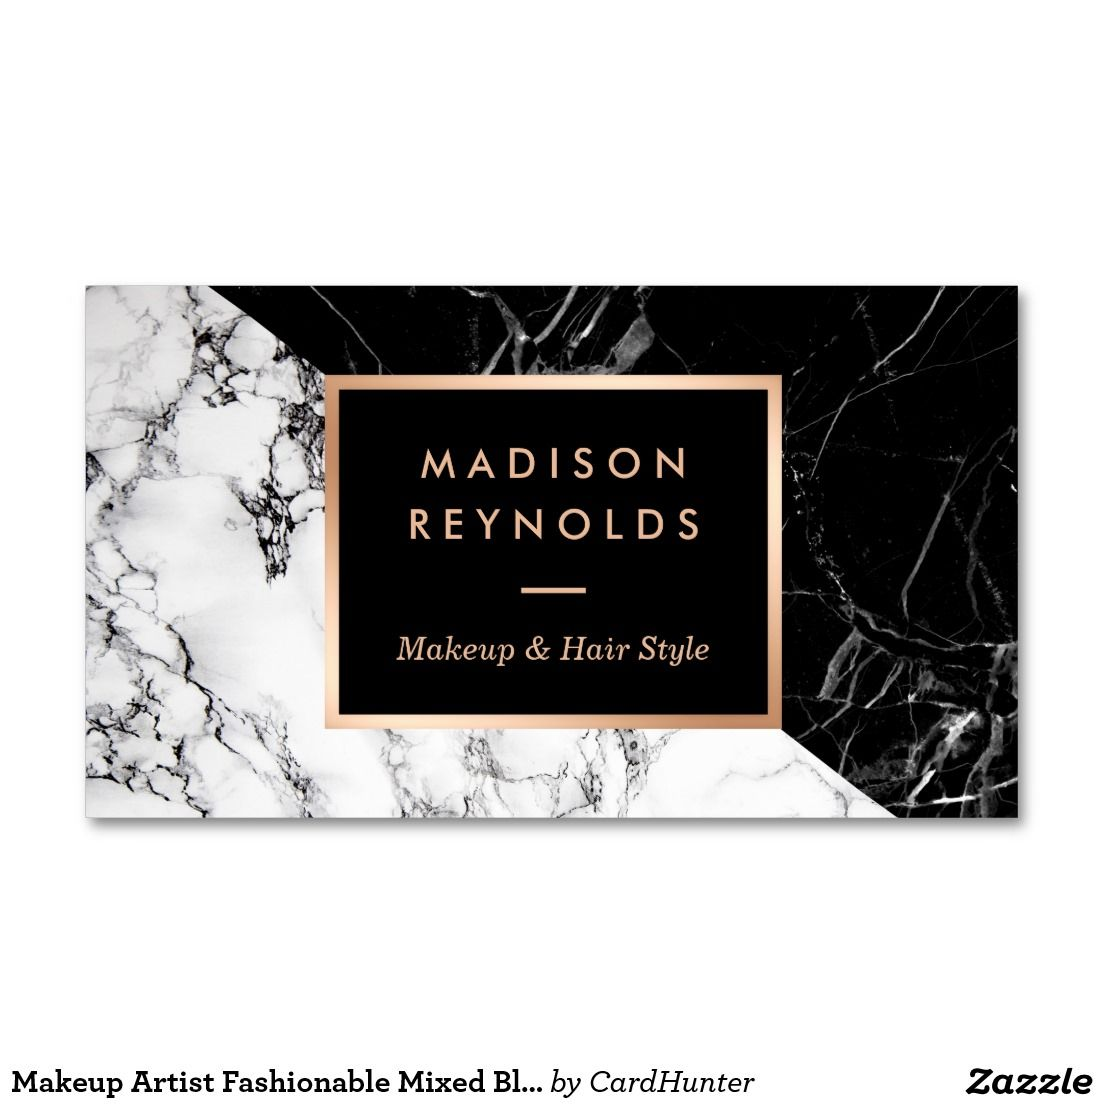 Profile Card | Pinterest | White marble, Business cards and Brand design